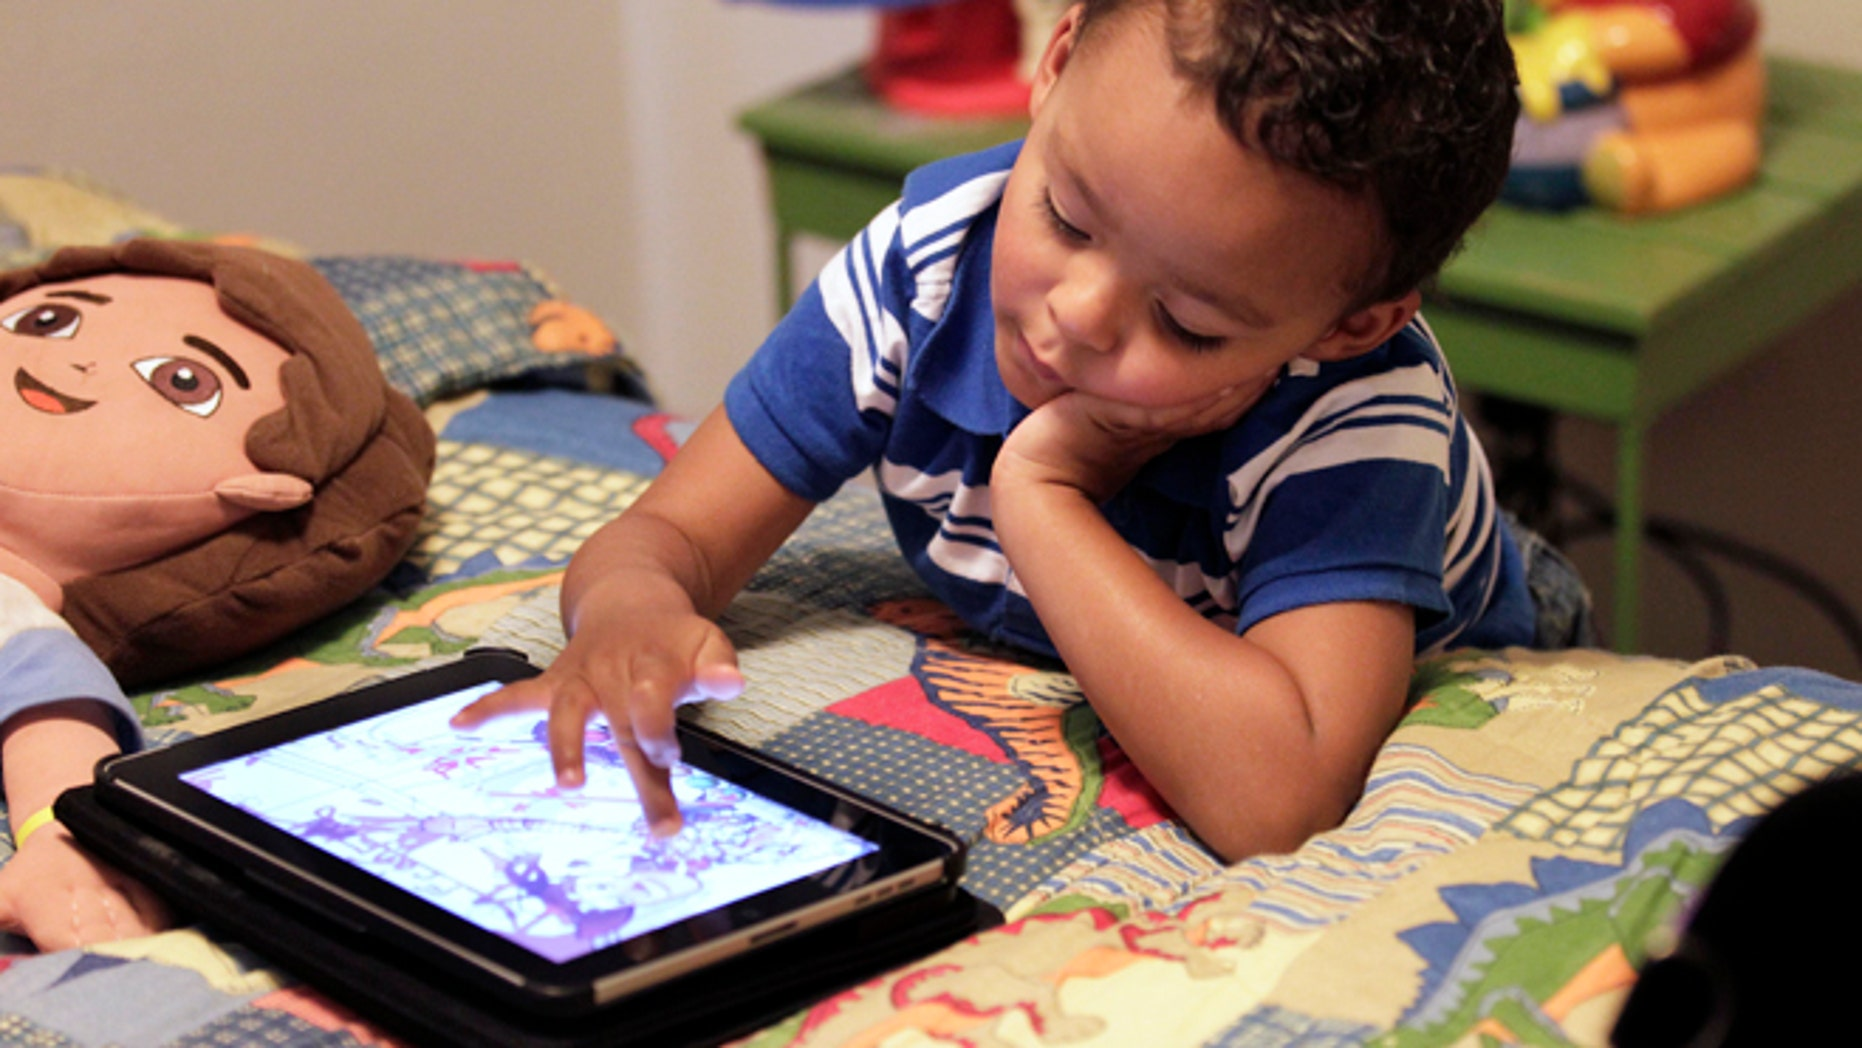 Frankie Thevenot, 3, plays with an iPad in his bedroom at his home in Metairie, La.  As of Wednesday, Aug. 7, 2013, the Campaign for a Commercial-Free Childhood, is urging federal investigators to examine the marketing practices of Fisher-Price's and Open Solution's mobile apps. It's the campaign's first complaint against the mobile app industry.